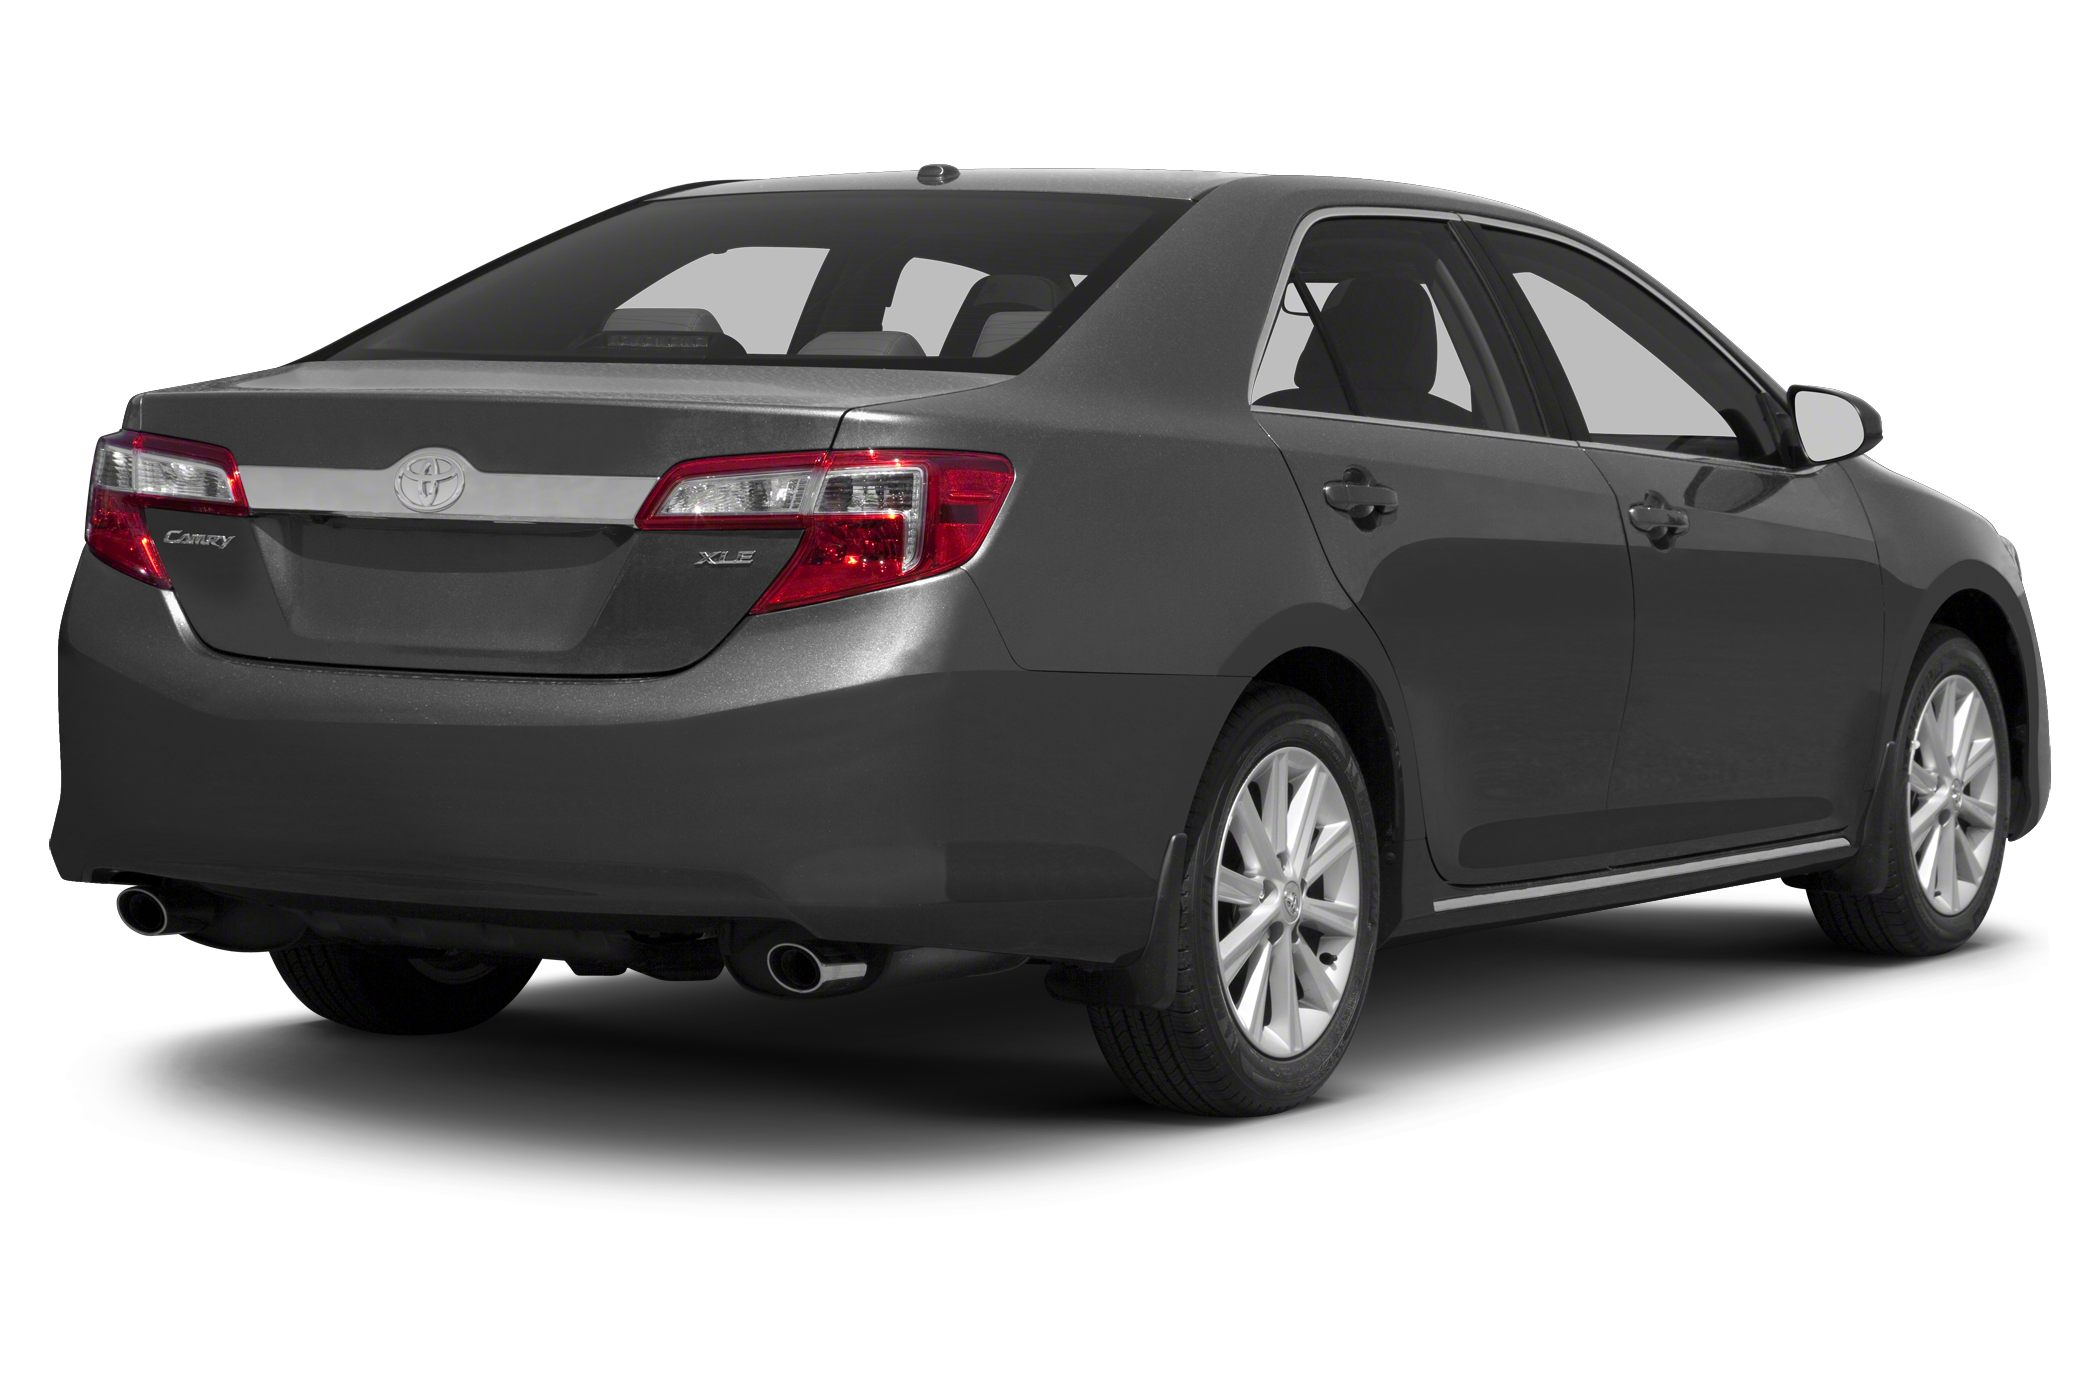 Fiat Of Clearwater >> See 2012 Toyota Camry Color Options - CarsDirect